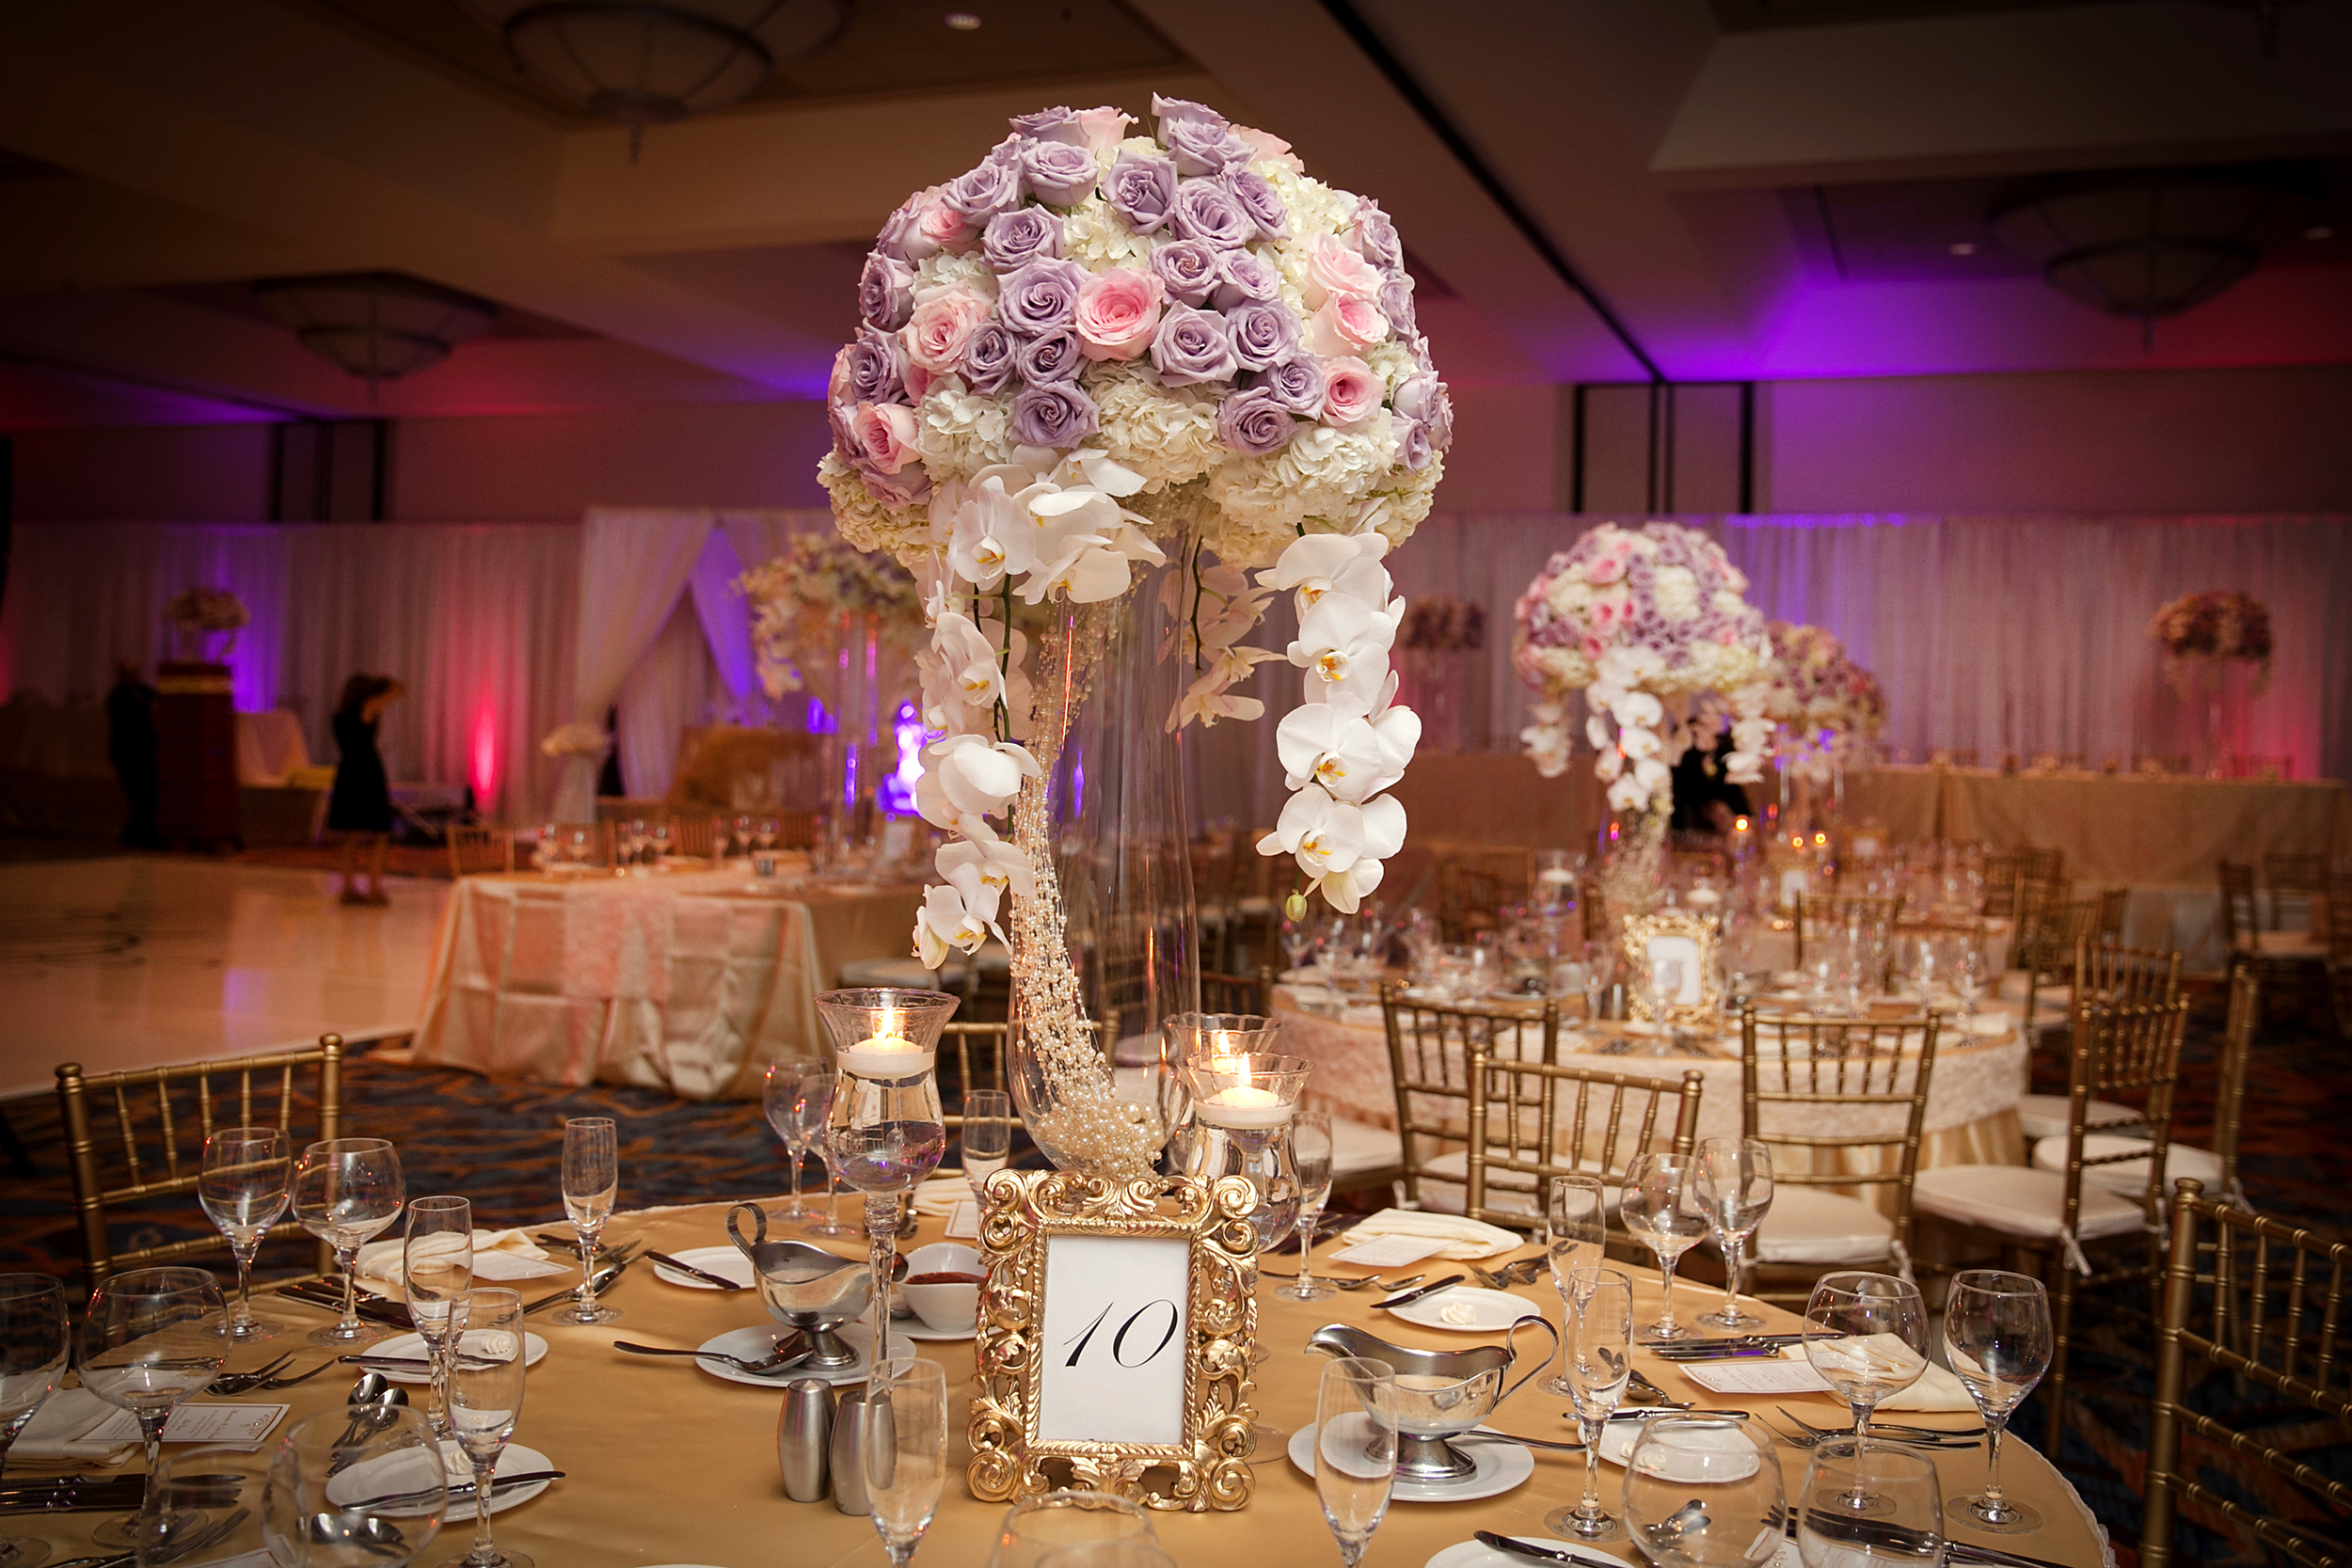 3_Lavender and pink centerpiece.jpg